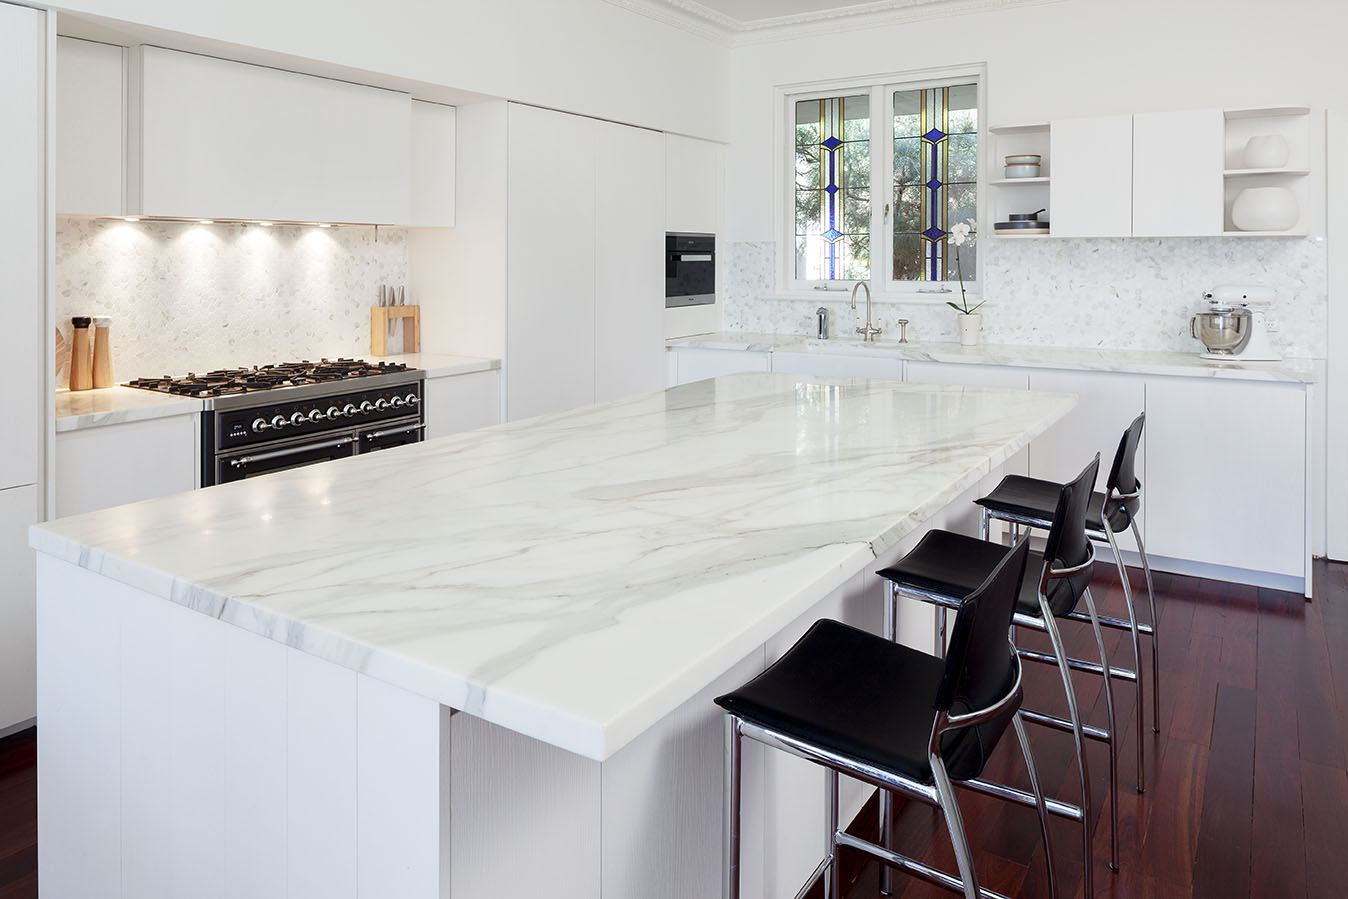 Are Quartz Countertops Natural Or Manmade A Comparison Between Natural And Man Made Benchtop Surfaces